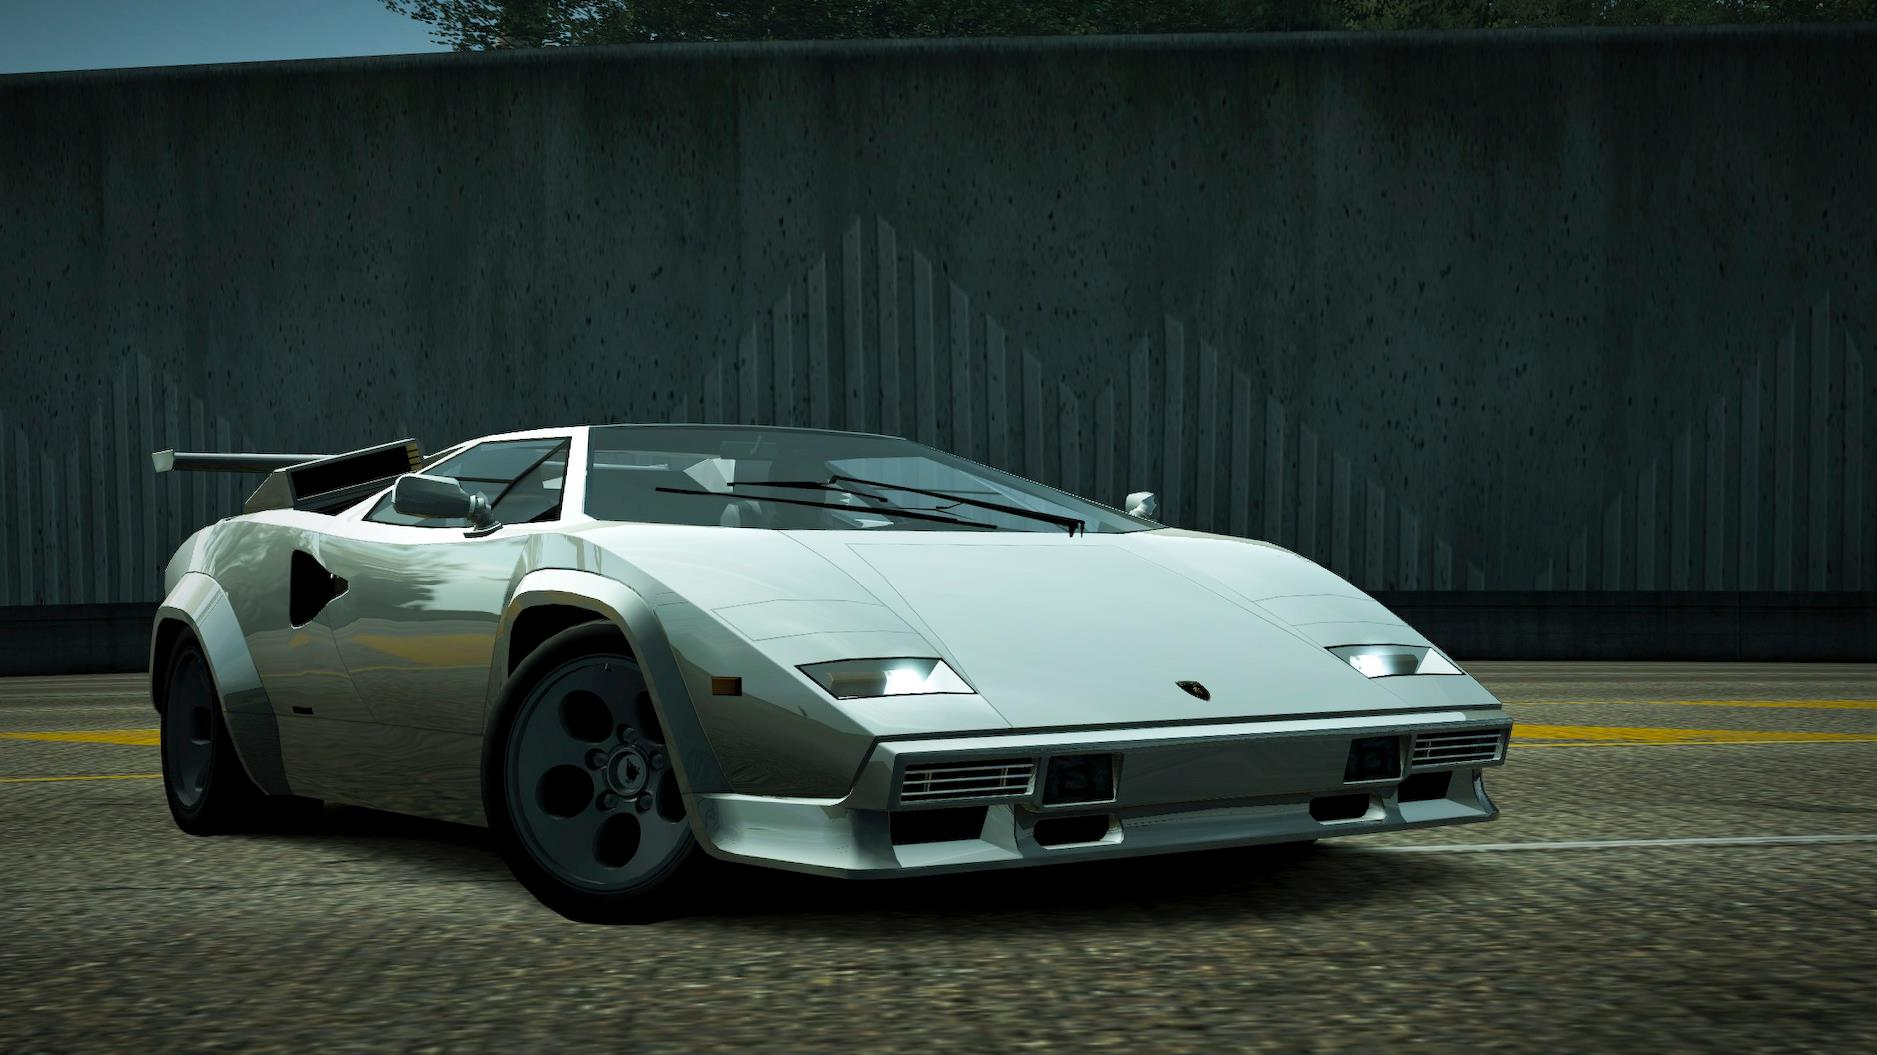 image carrelease lamborghini countach 5000 quattrovalvole white nfs world wiki. Black Bedroom Furniture Sets. Home Design Ideas